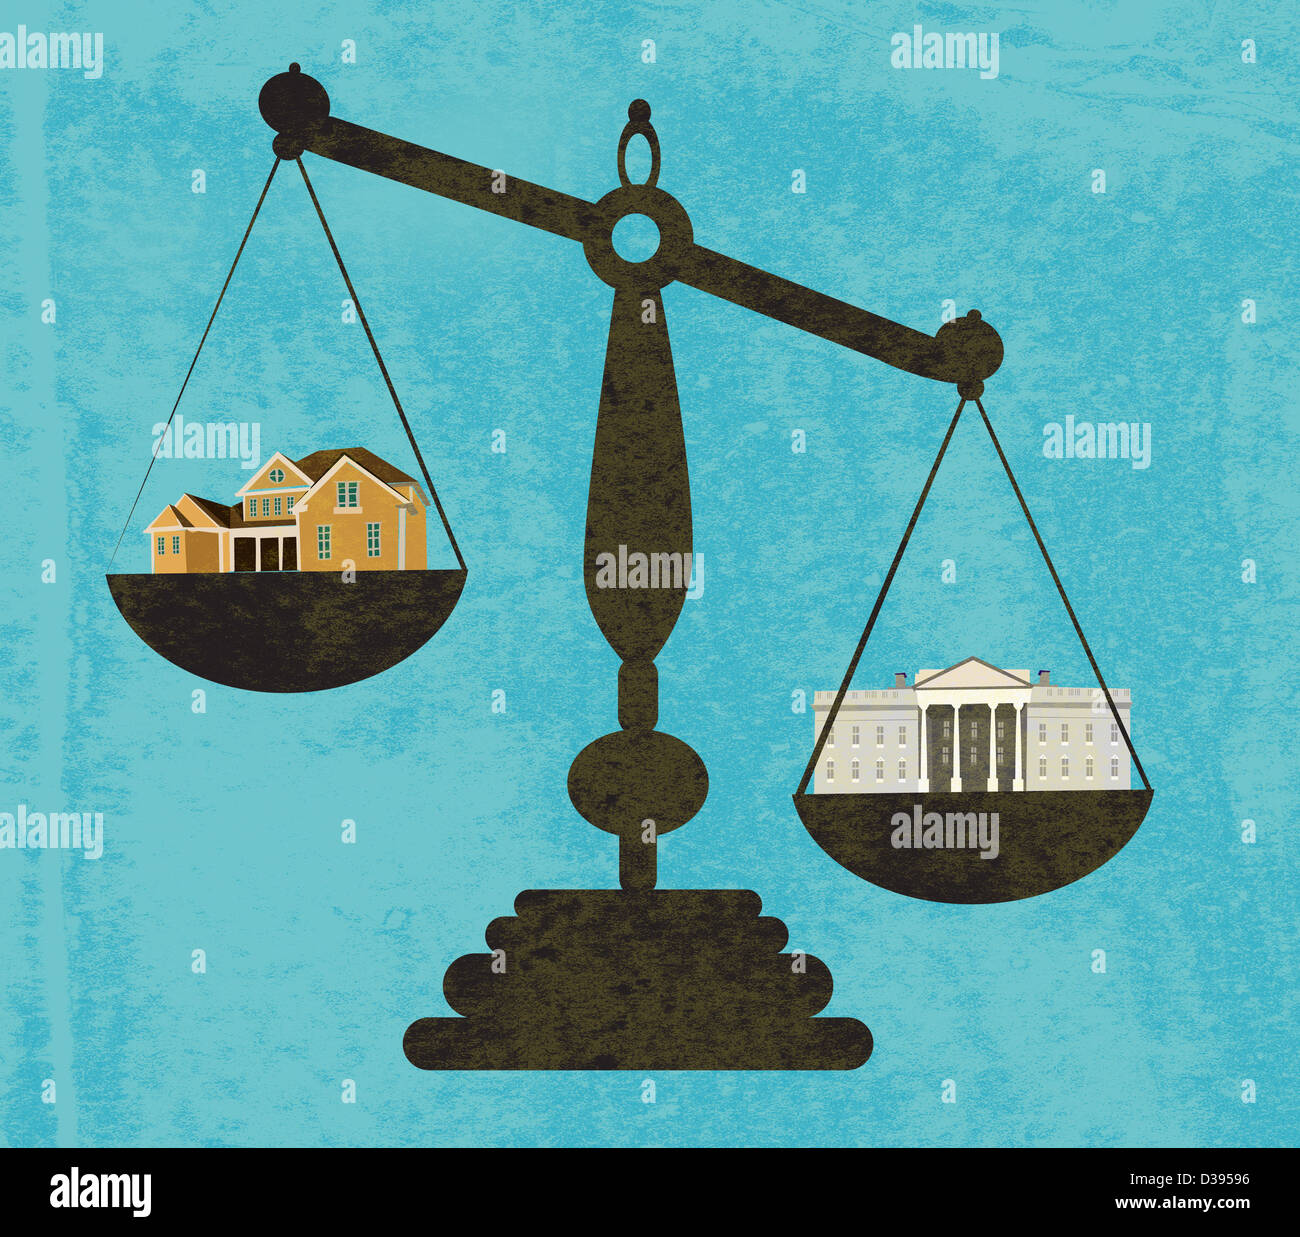 Illustration of bank and house in weight scale - Stock Image